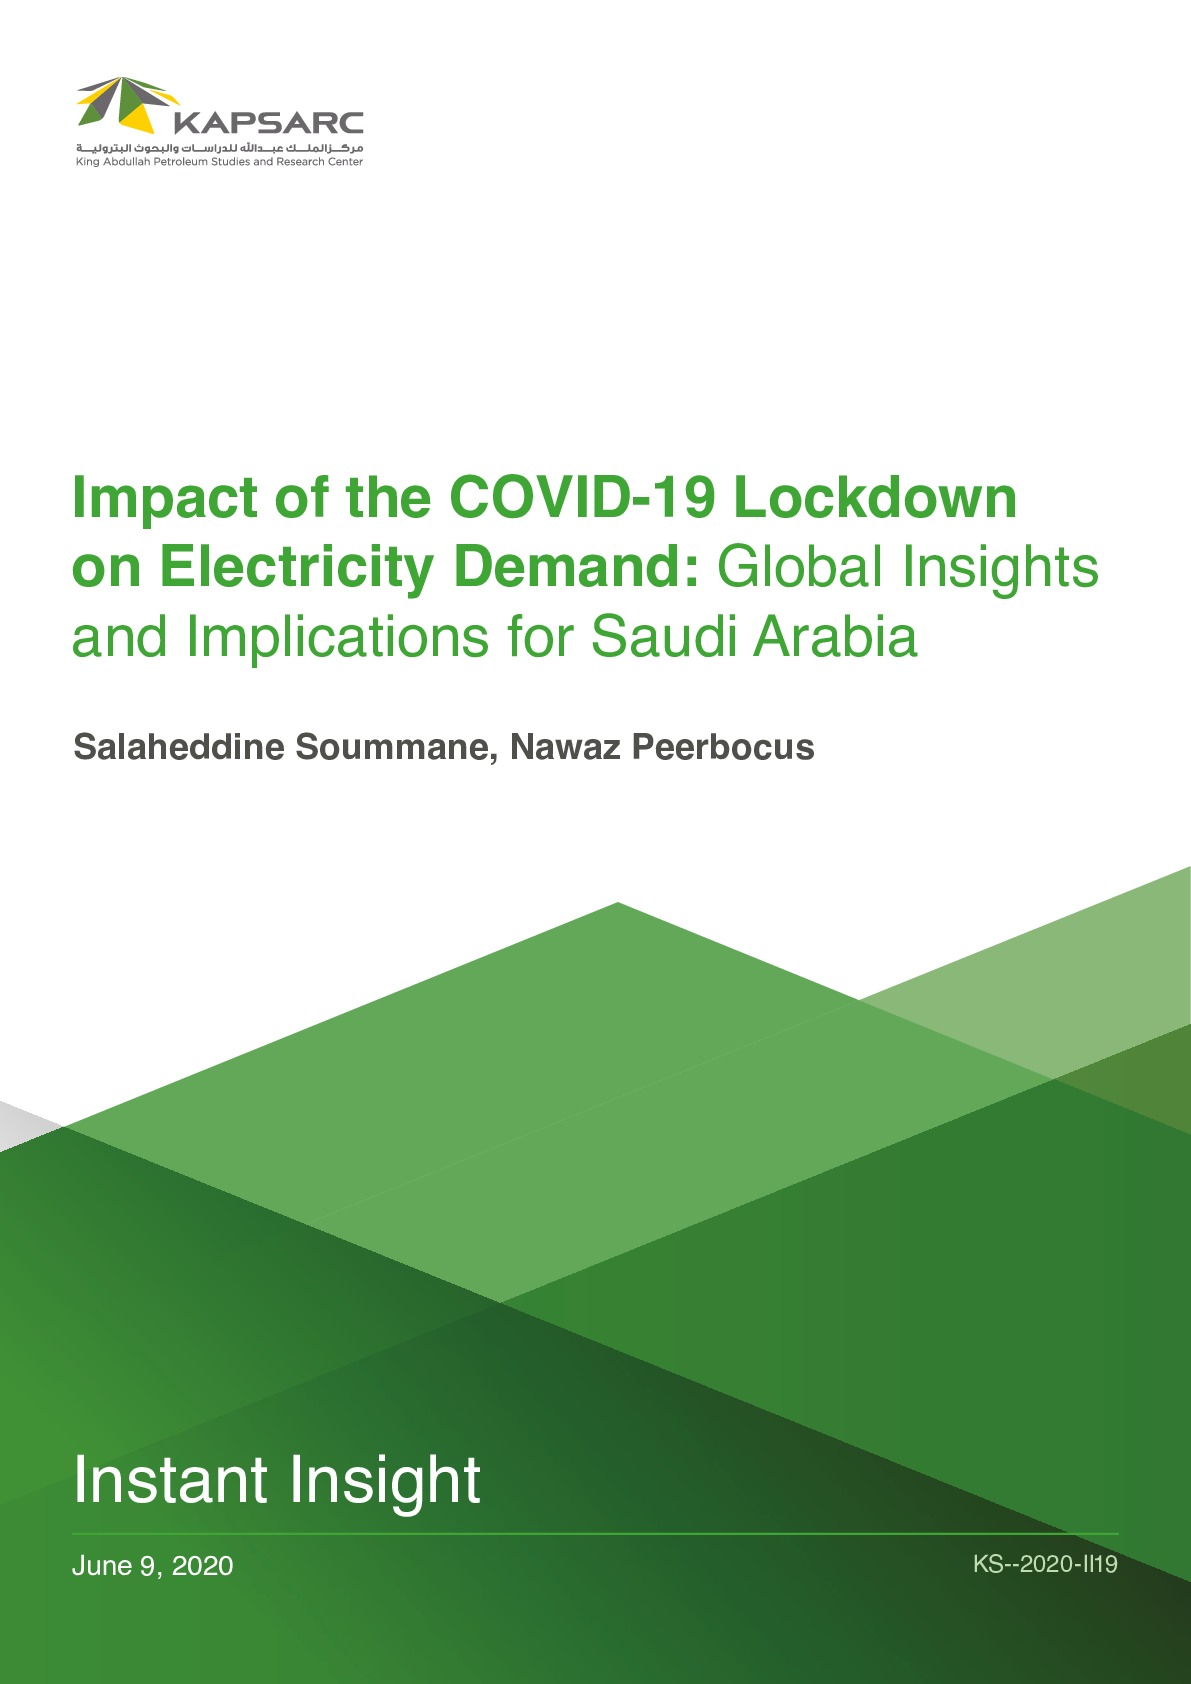 Impact of the COVID-19 Lockdown on Electricity Demand: Global Insights and Implications for Saudi Arabia